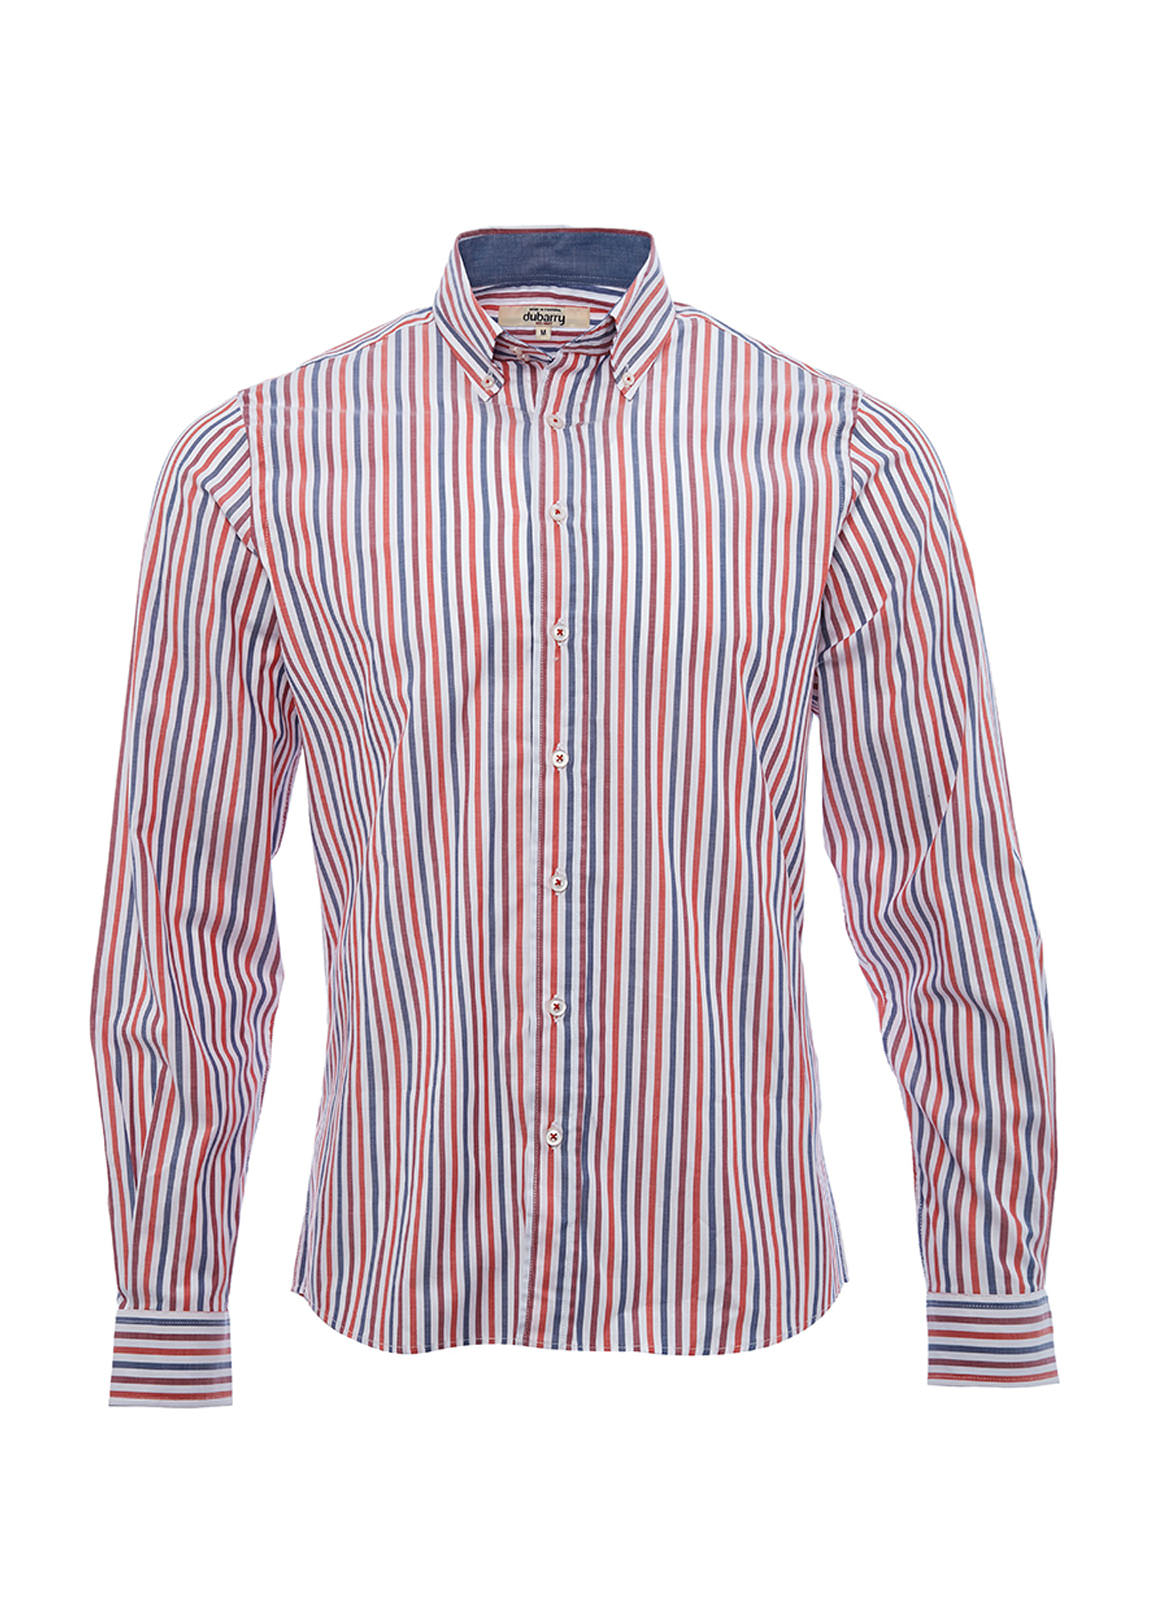 Dubarry_ Kinvara striped shirt - Orchid_Image_2